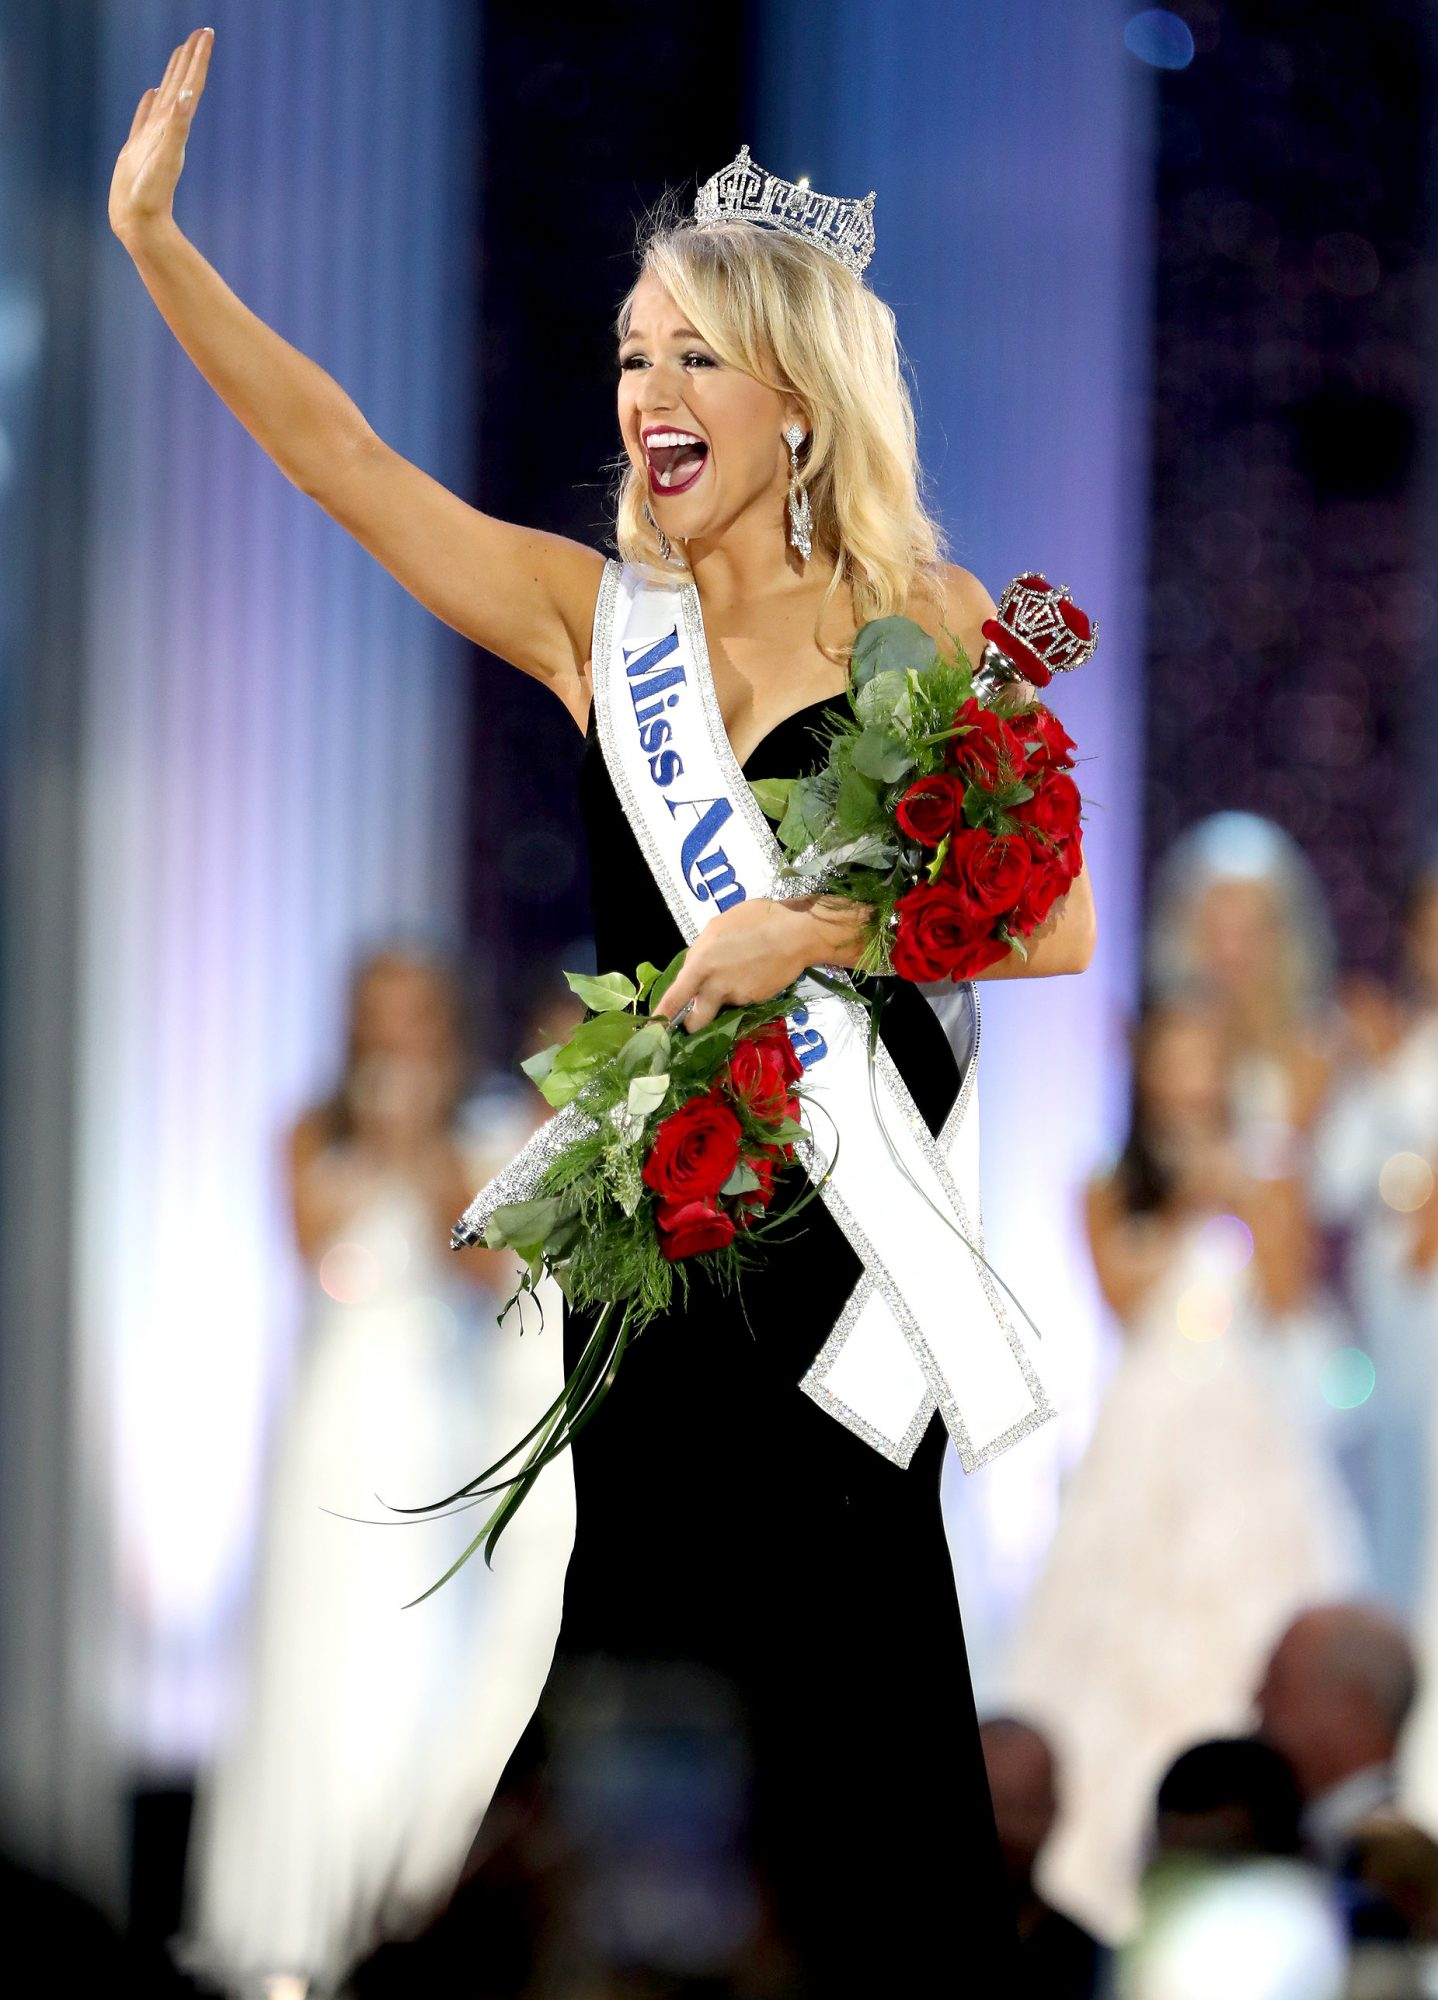 Miss Arkansas Savvy Shields is Crowned at 2017 Miss America